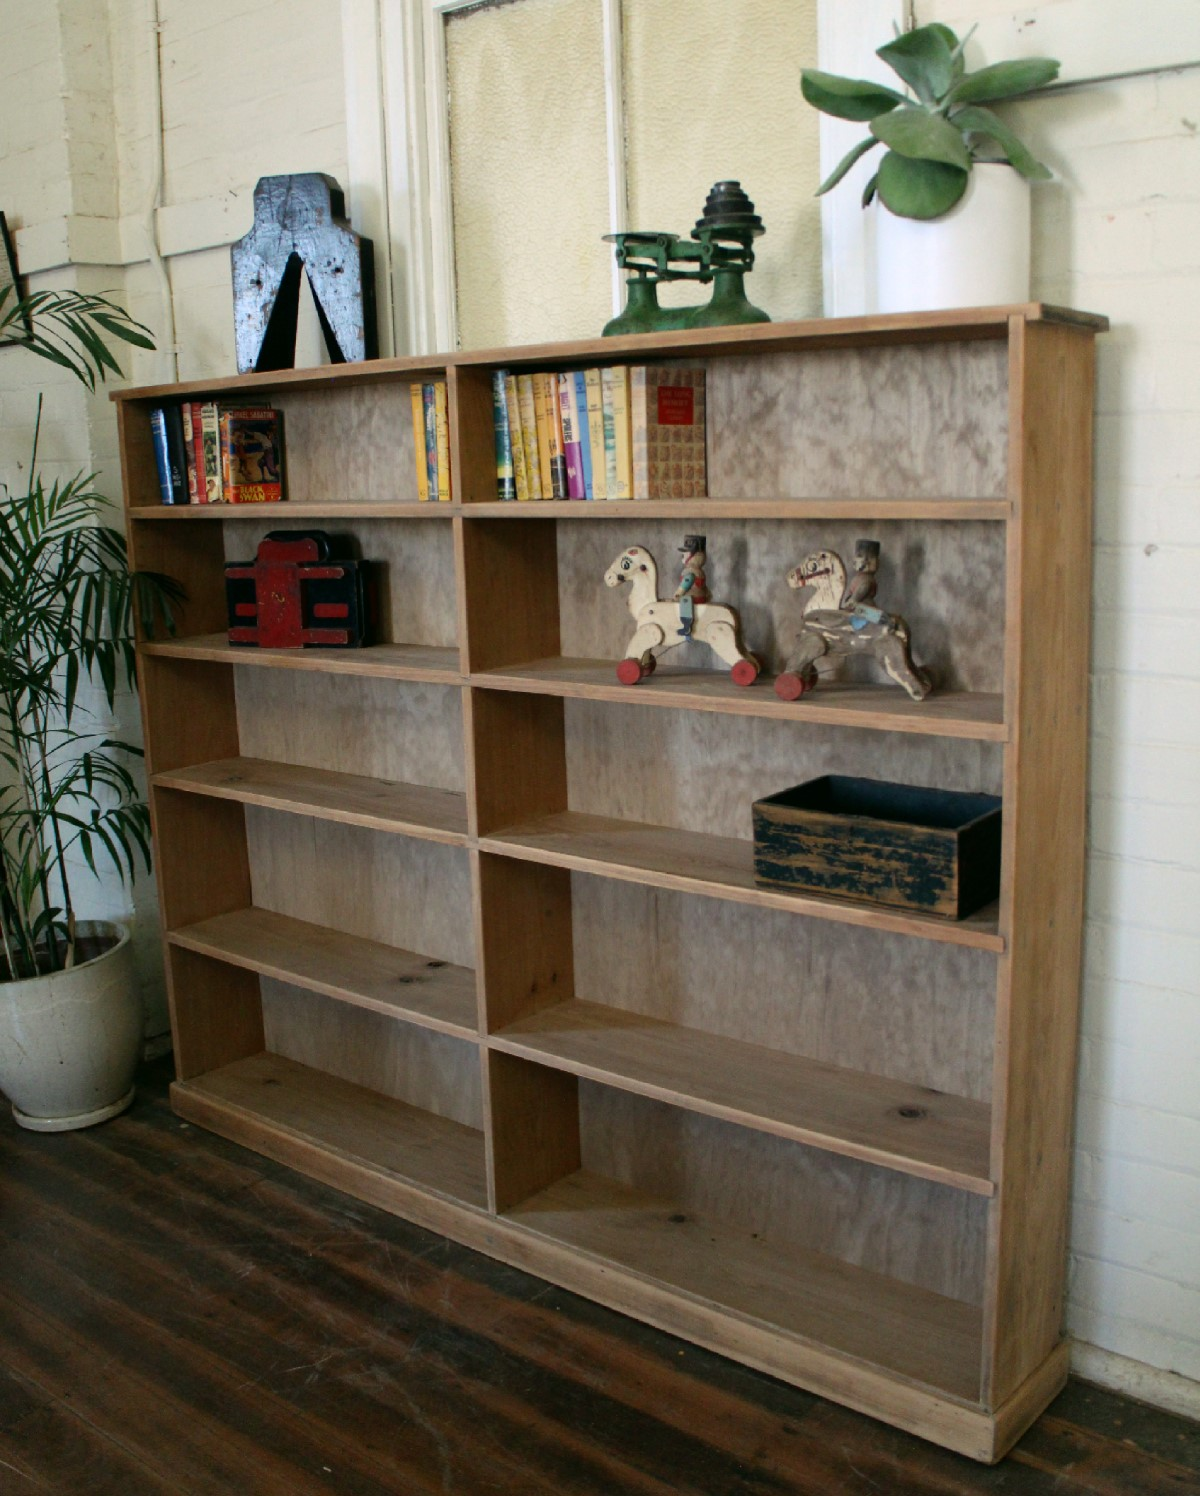 Antique Pine Bookcase.jpg